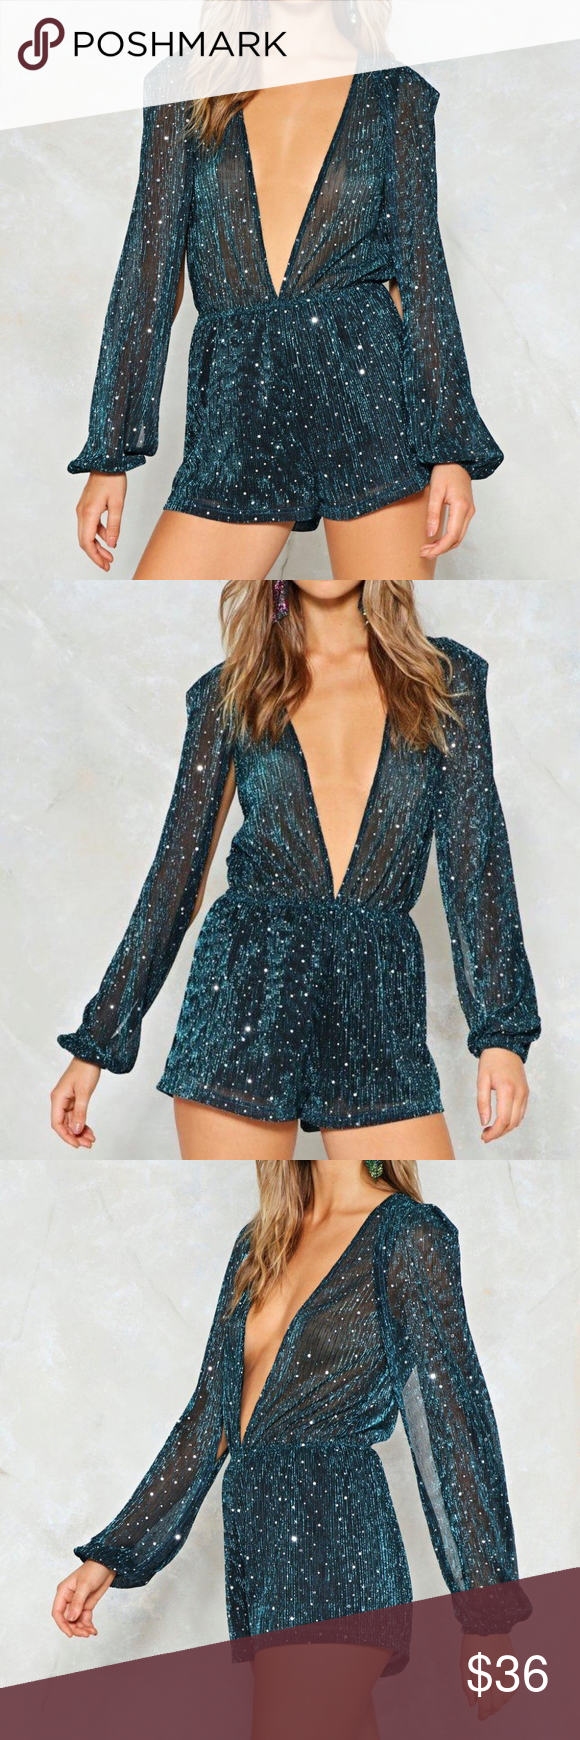 b3ffaf651a9e Boogie Wonderland Metallic Romper Never worn. The Boogie Wonderland Romper  features a semi-sheer